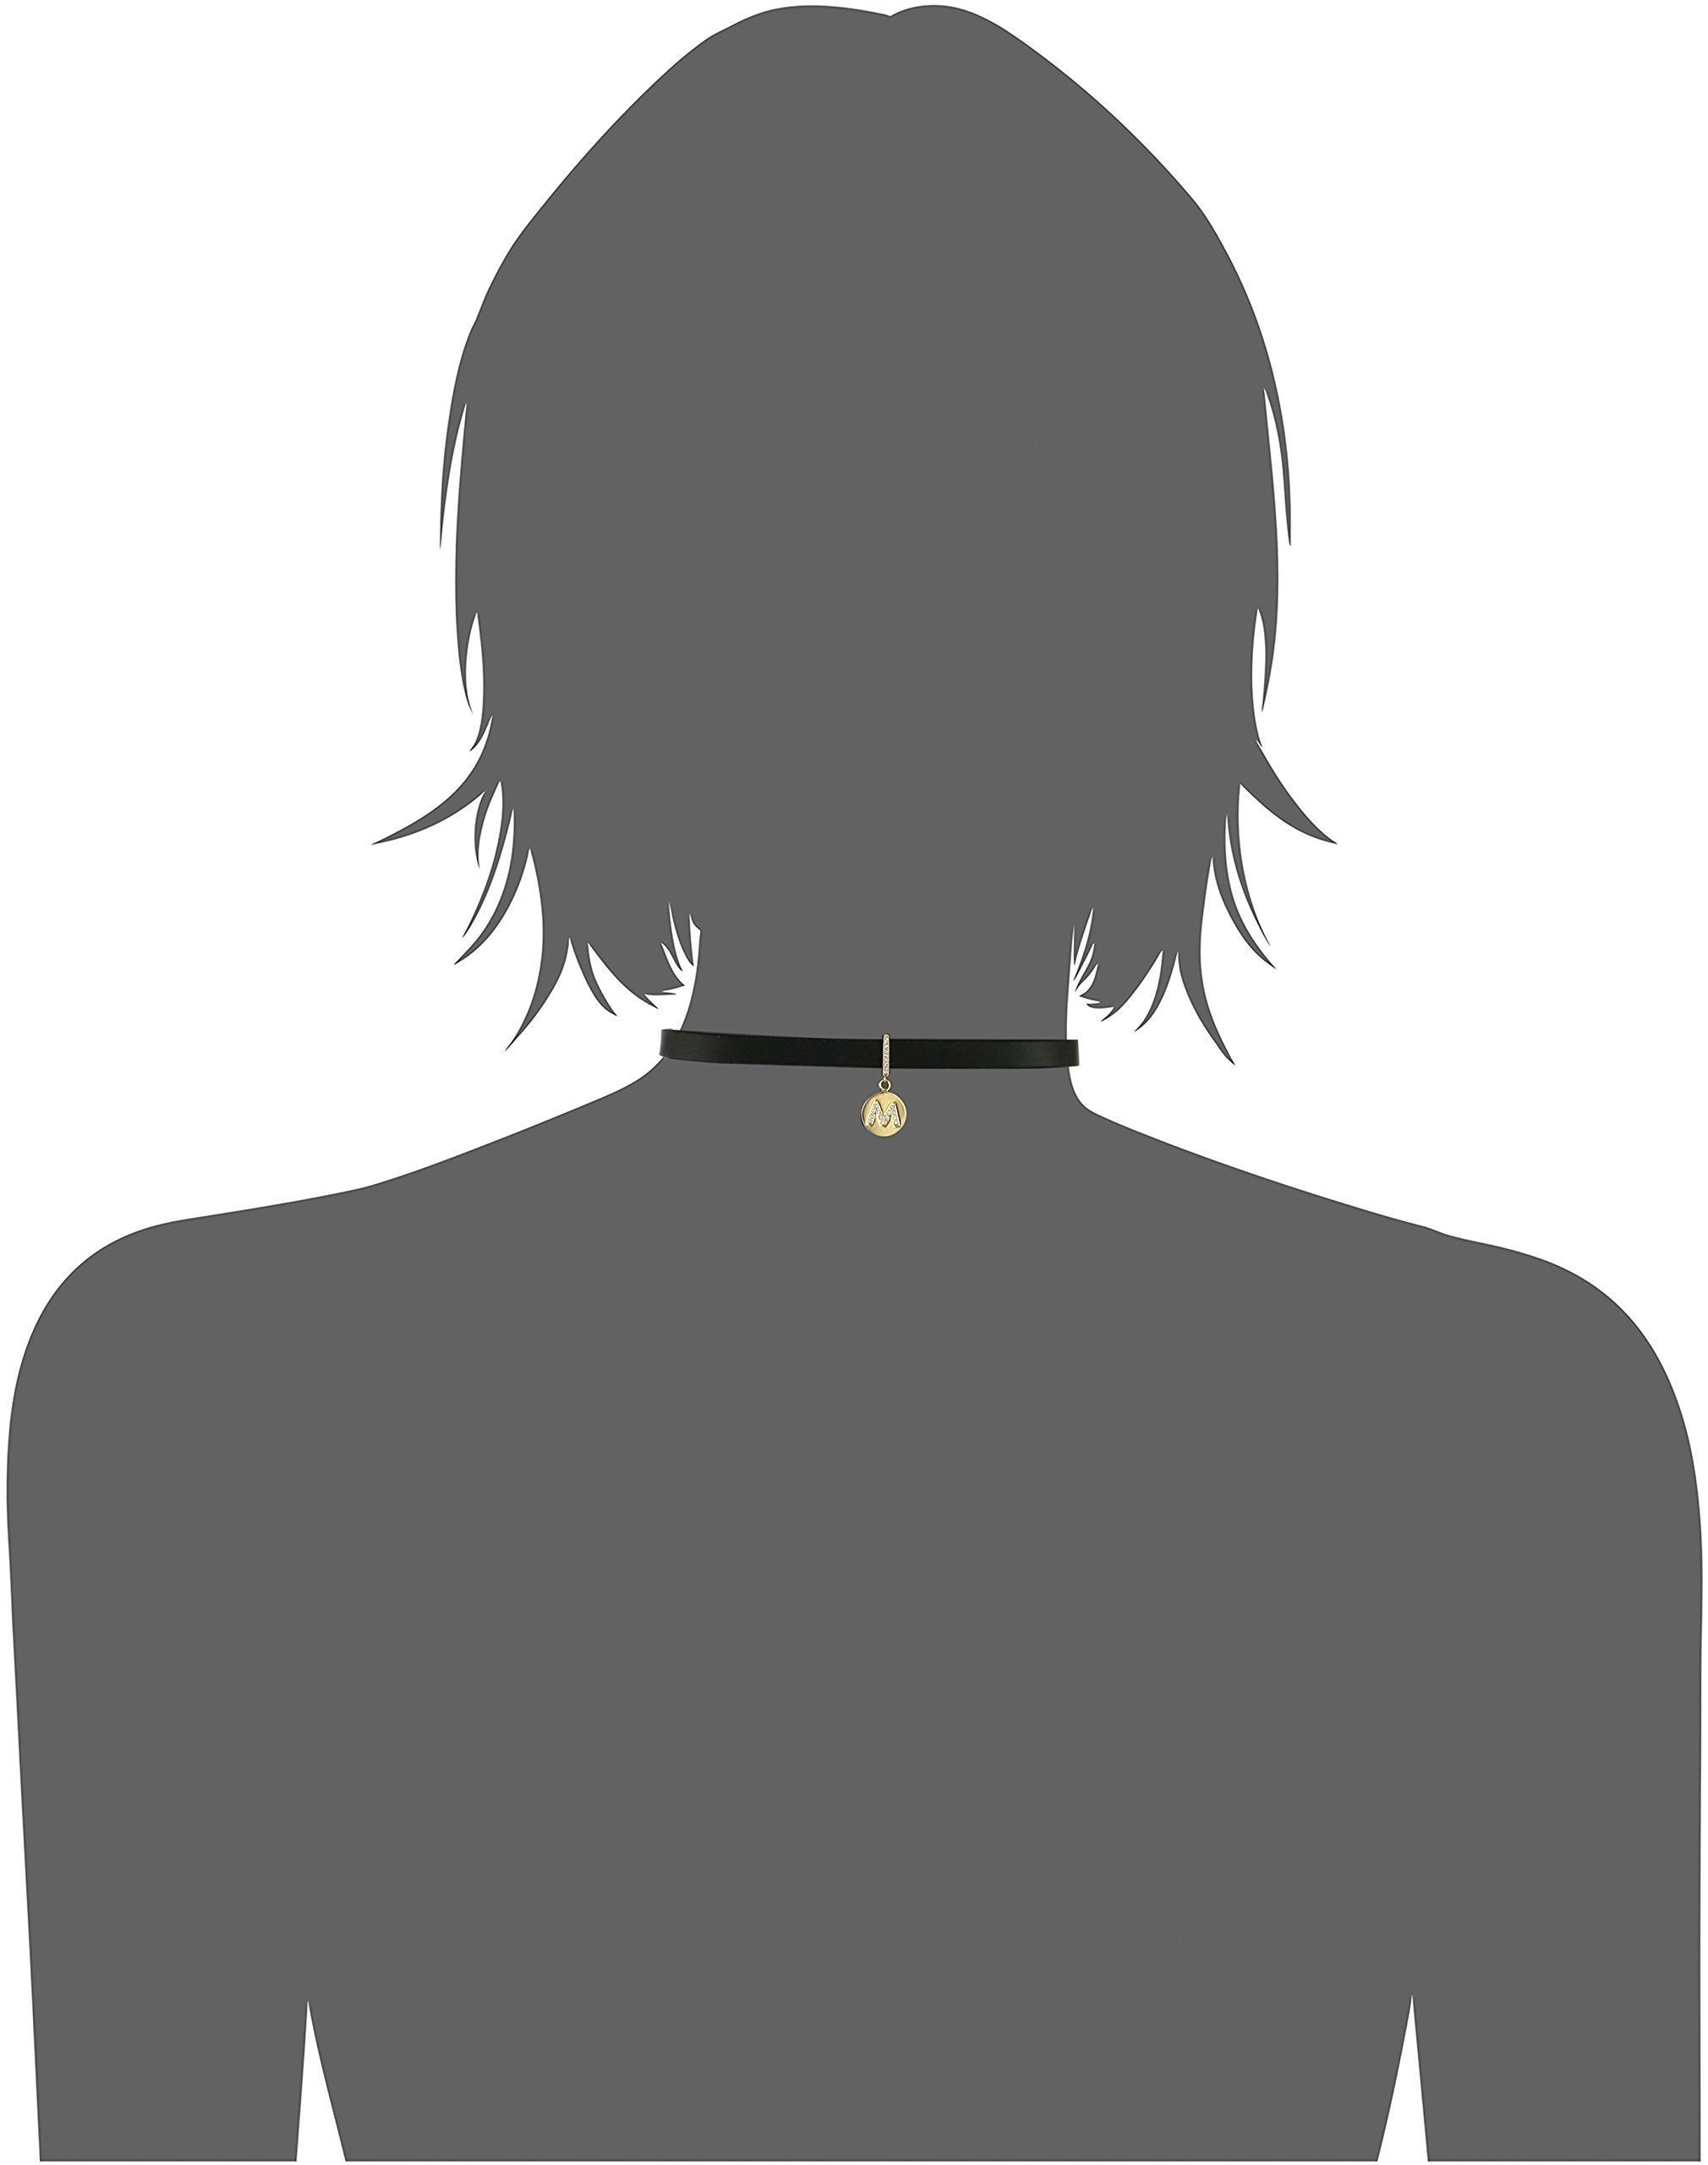 Kate Spade New York M Choker Necklace, 14'' + 2'' Extender by Kate Spade New York (Image #2)